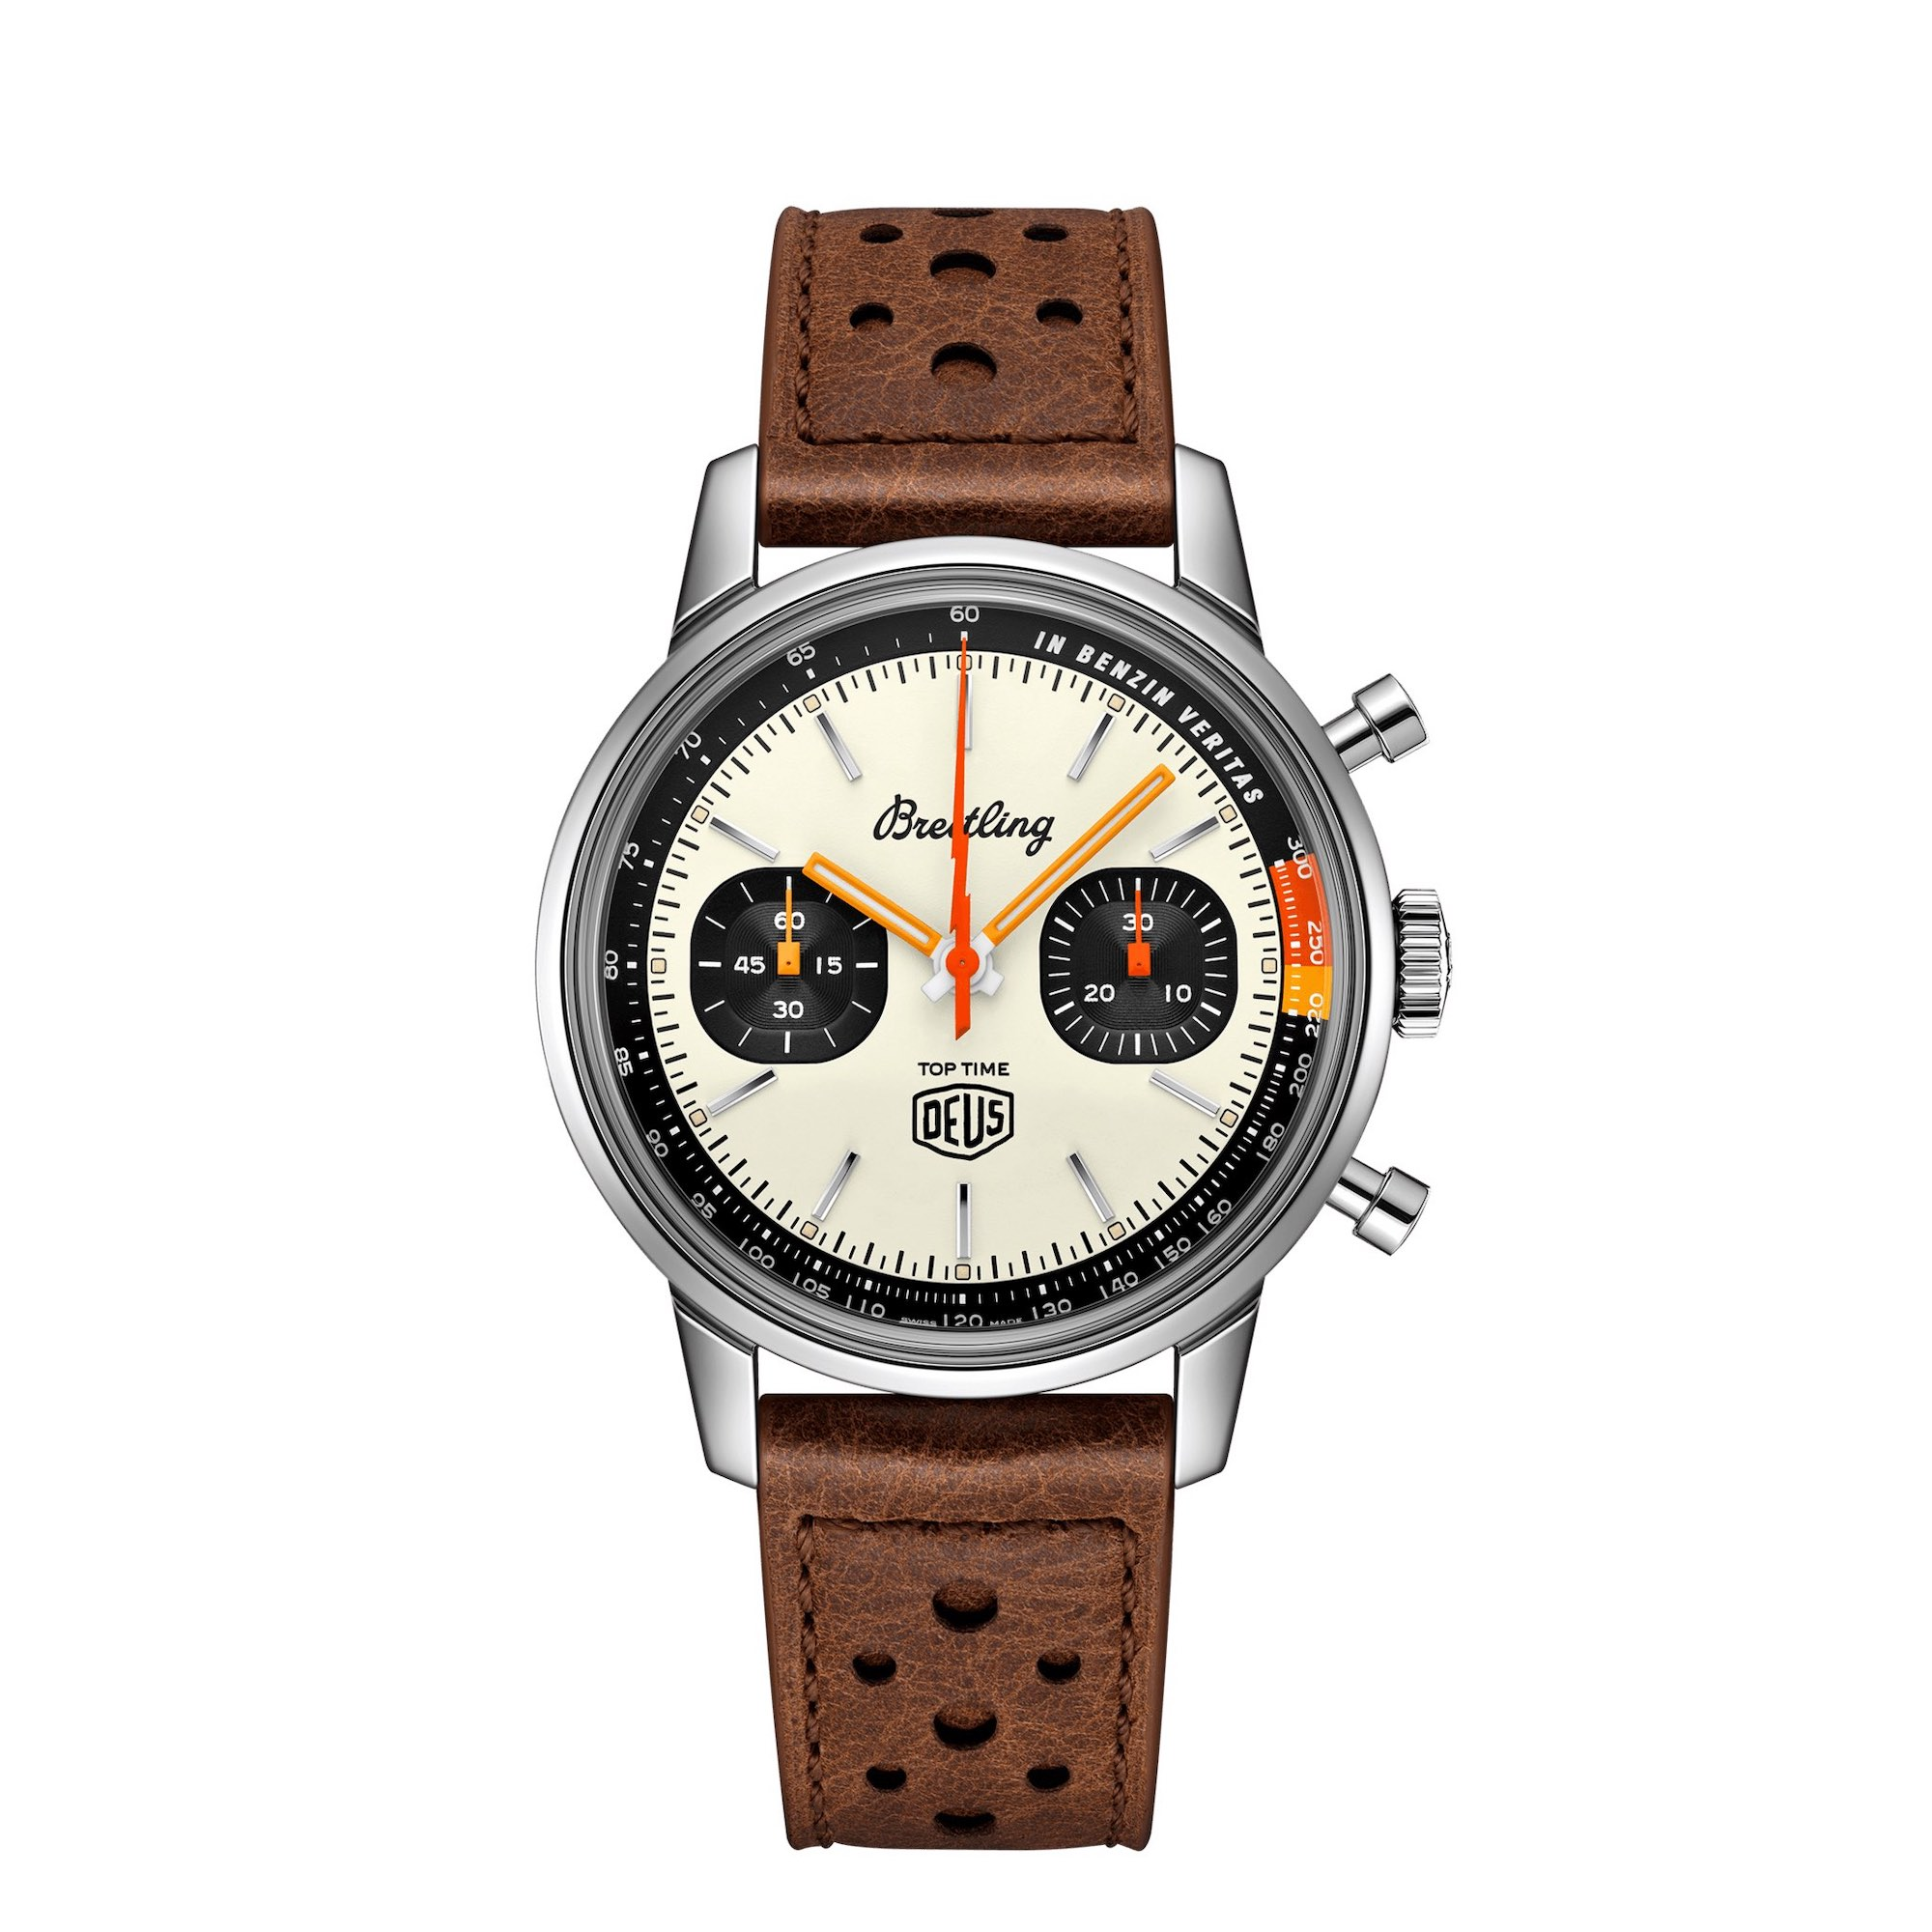 a233101a1a1x1 top time deus limited edition soldier